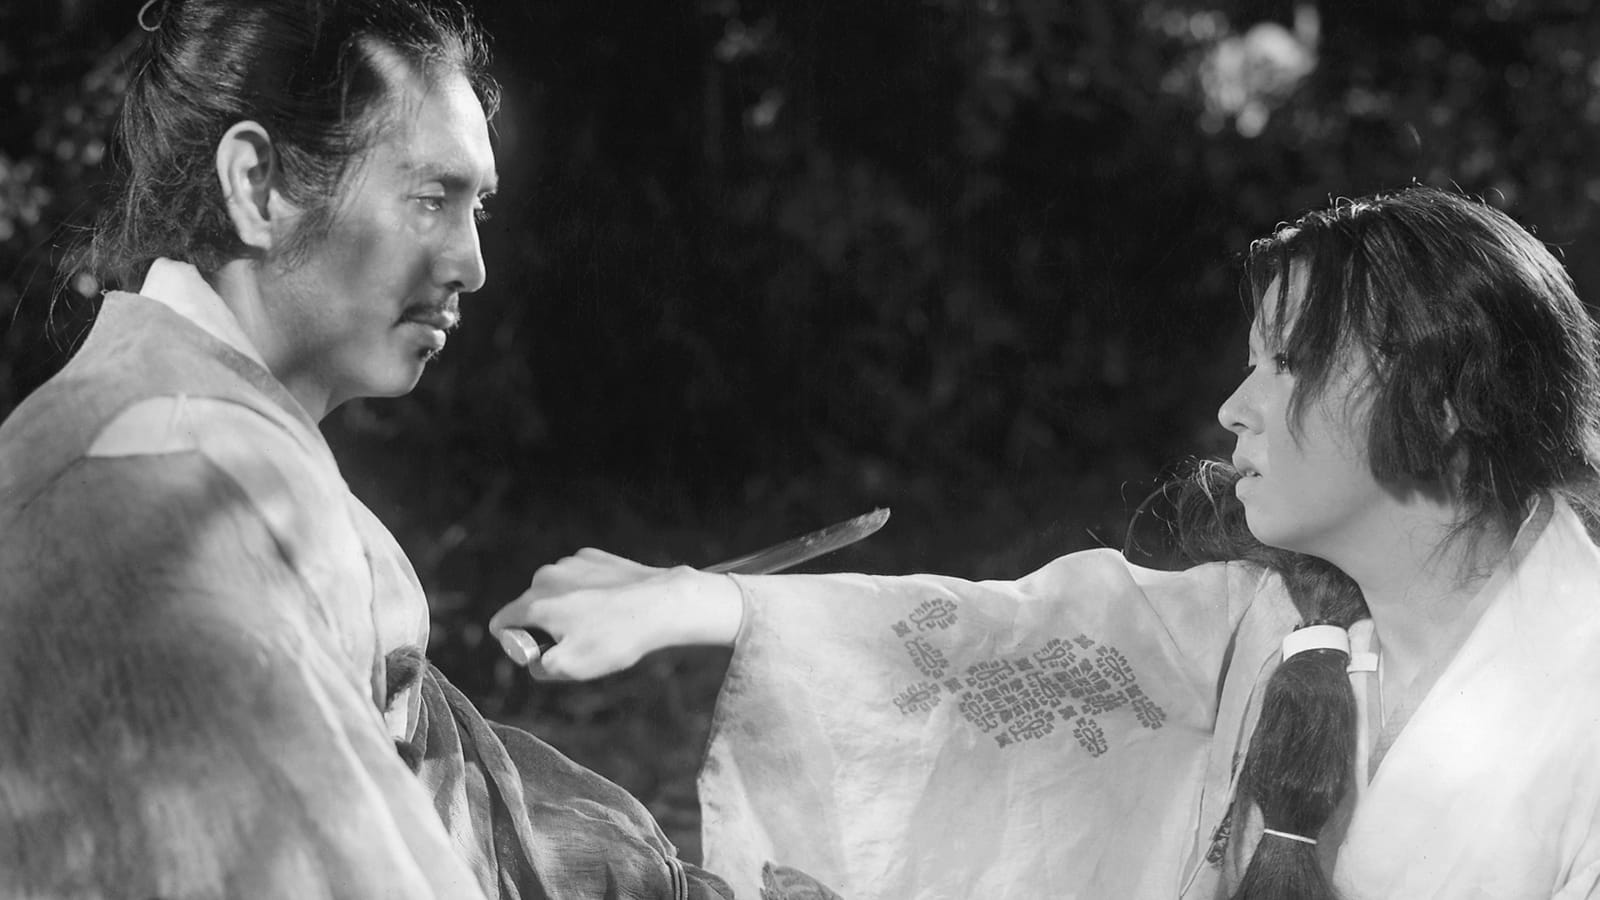 Akira Kurosawa samurai films and profound global and Japanese influence on westerns, Ghost of Tsushima, and more: Seven Samurai, Sanjuro, Yojimbo, The Hidden Fortress, Ran, Throne of Blood, and more